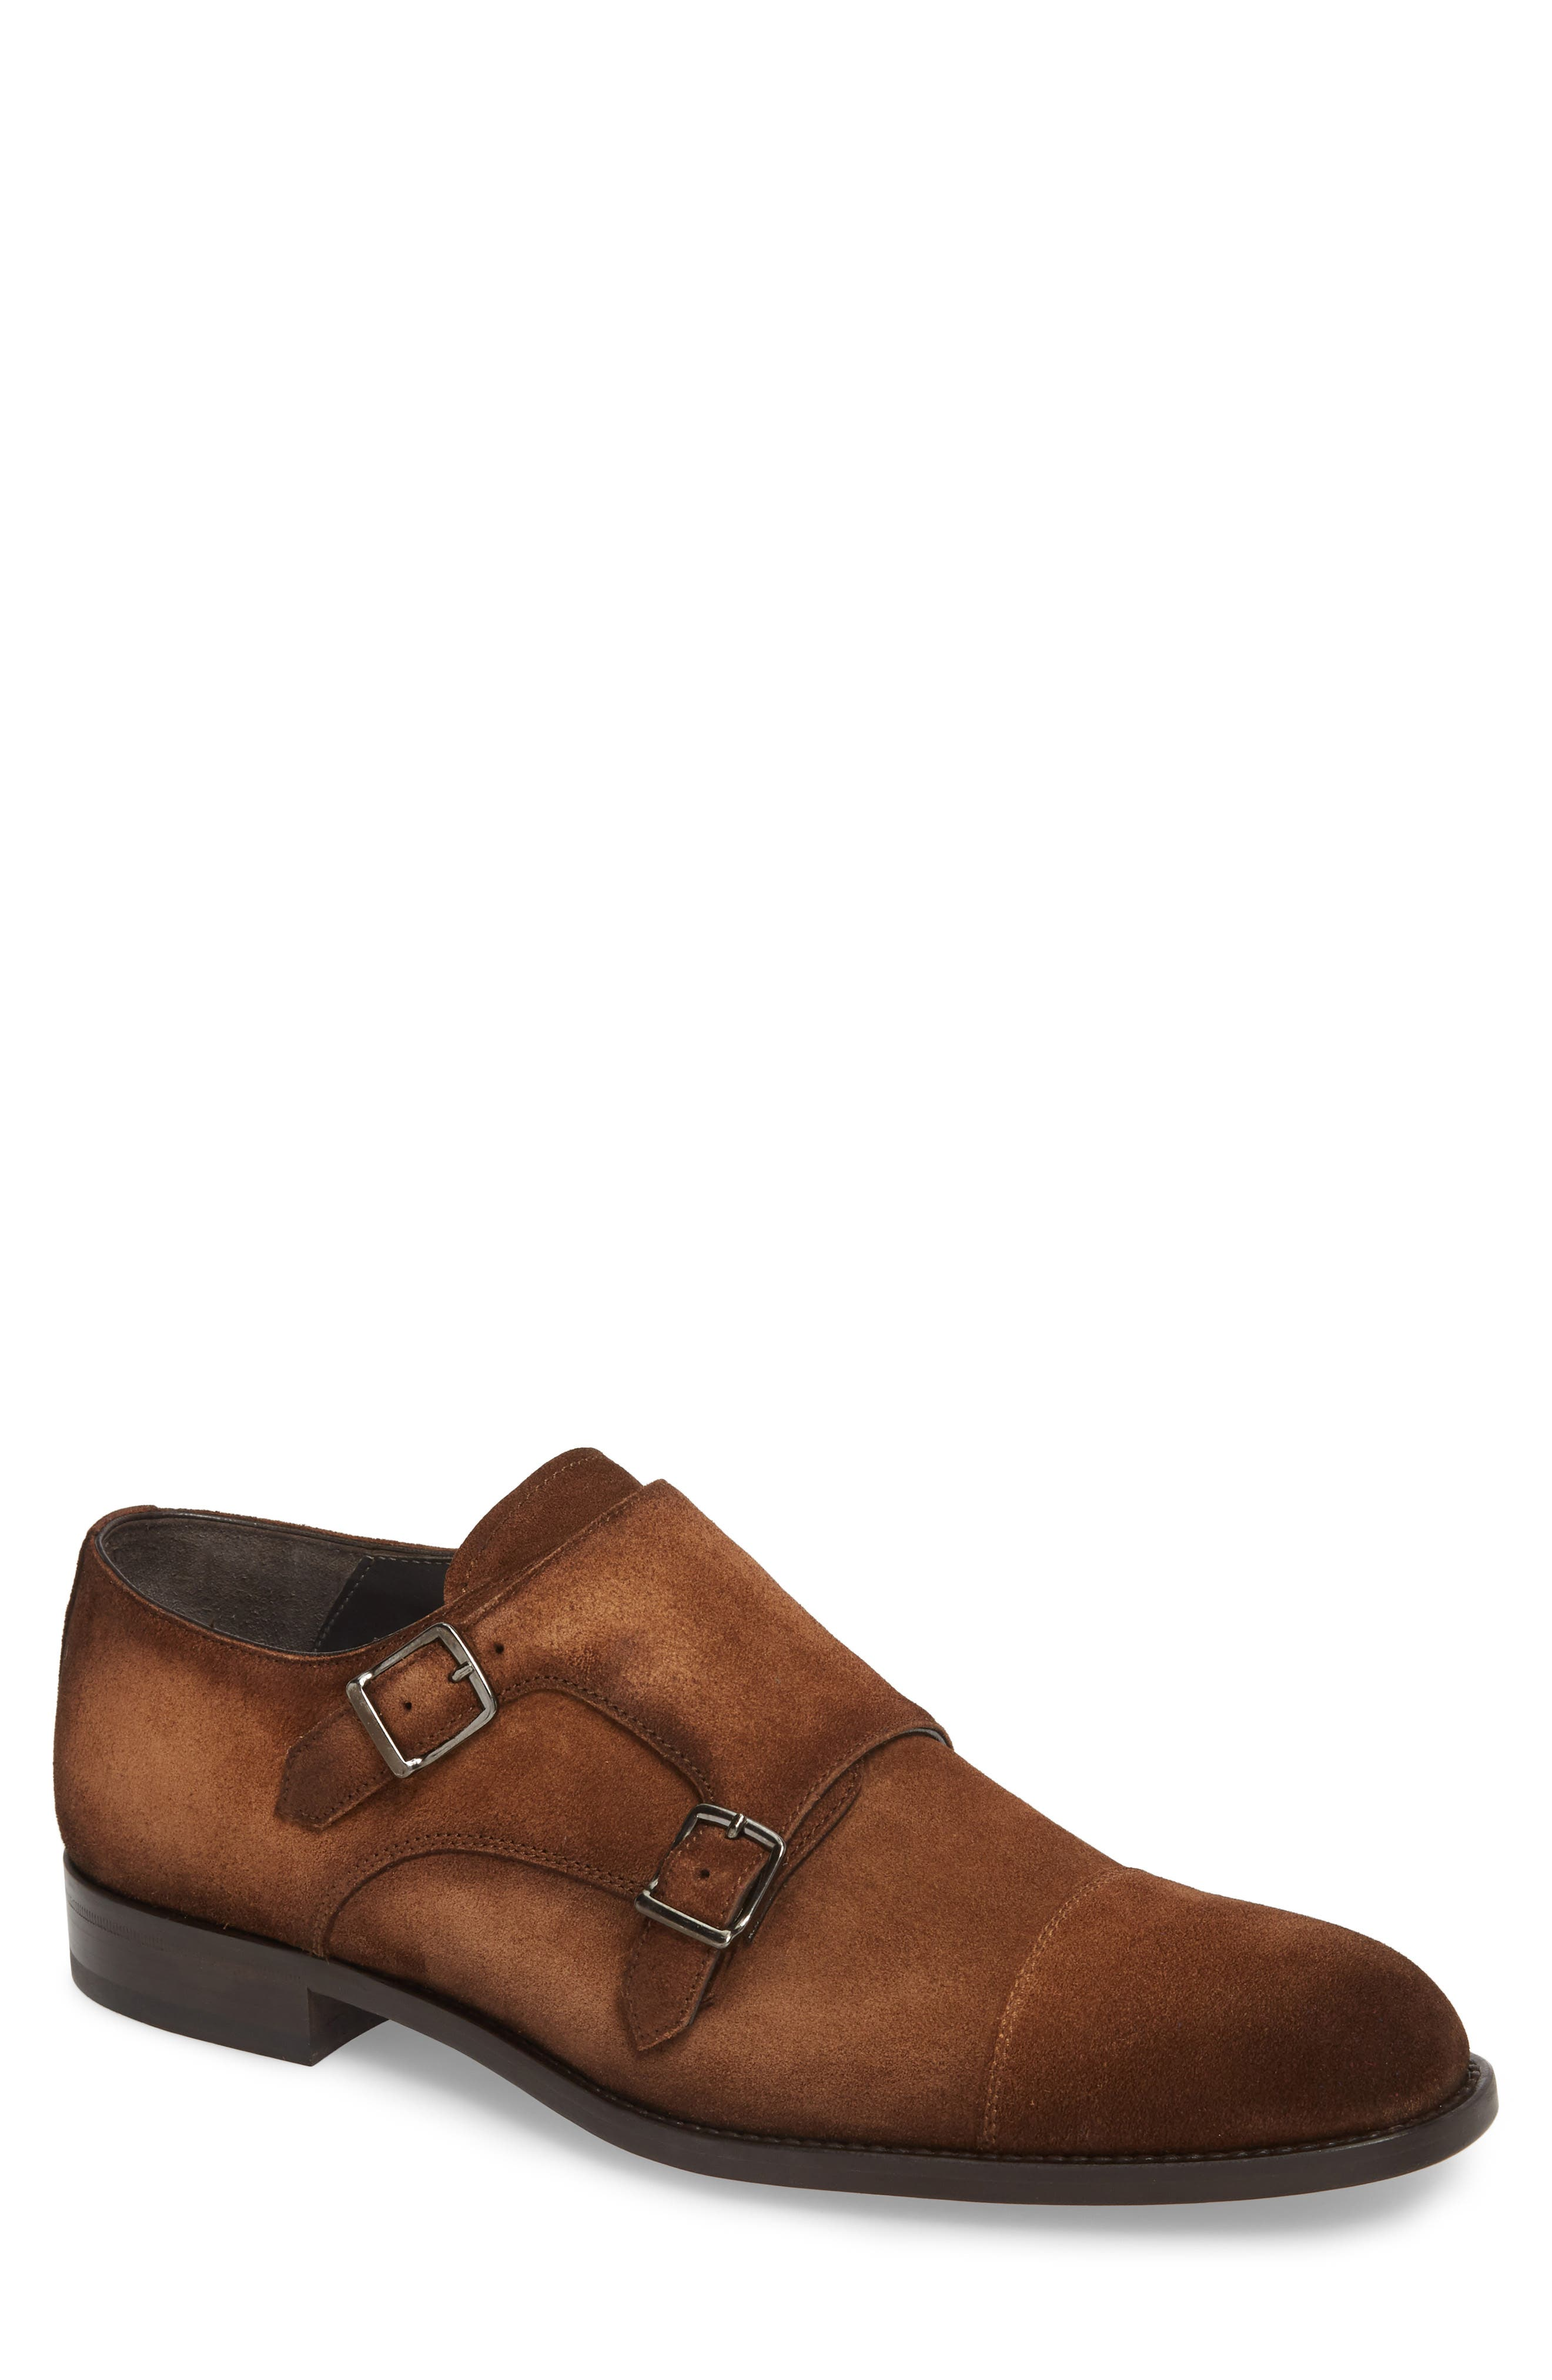 To Boot New York Quentin Cap Toe Monk Shoe, Brown